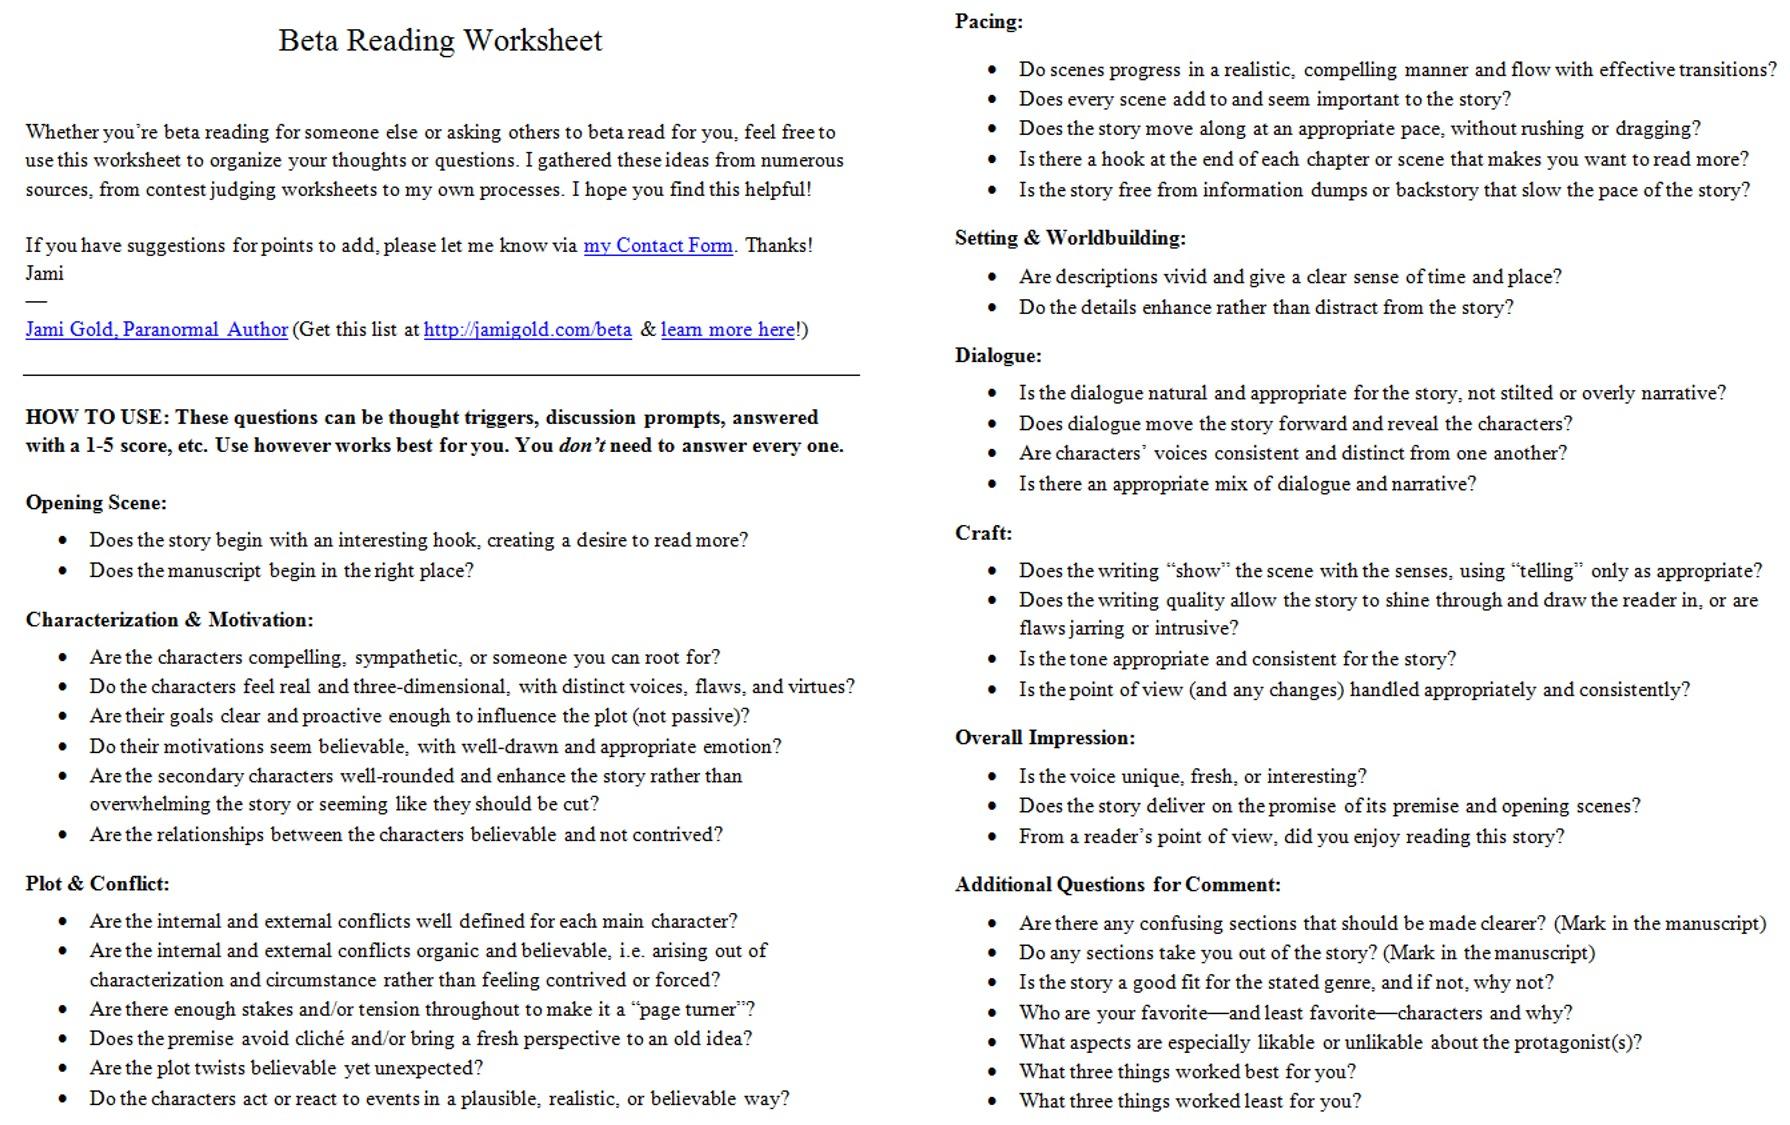 Weirdmailus  Terrific Worksheets For Writers  Jami Gold Paranormal Author With Exquisite Screen Shot Of The Twopage Beta Reading Worksheet With Alluring Nd Grade Problem Solving Worksheets Also Mole And Mass Worksheet In Addition Converting Fractions To Decimals To Percents Worksheet And Photosynthesis Starts With Worksheet Answers As Well As Physics Work Worksheet Additionally Germs Worksheets From Jamigoldcom With Weirdmailus  Exquisite Worksheets For Writers  Jami Gold Paranormal Author With Alluring Screen Shot Of The Twopage Beta Reading Worksheet And Terrific Nd Grade Problem Solving Worksheets Also Mole And Mass Worksheet In Addition Converting Fractions To Decimals To Percents Worksheet From Jamigoldcom